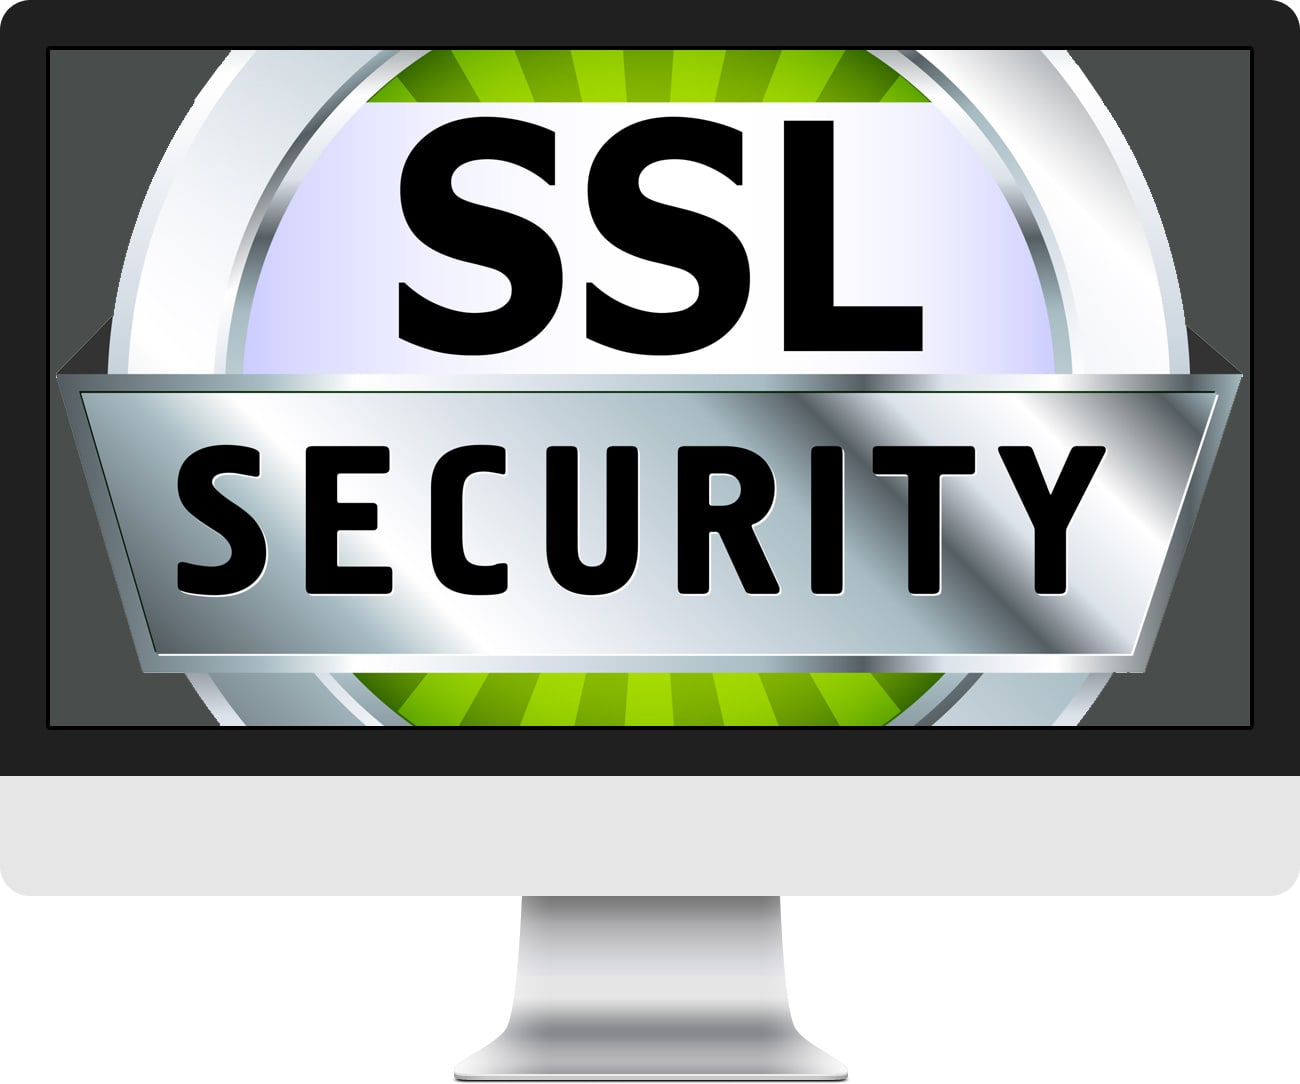 ssl_security_mac